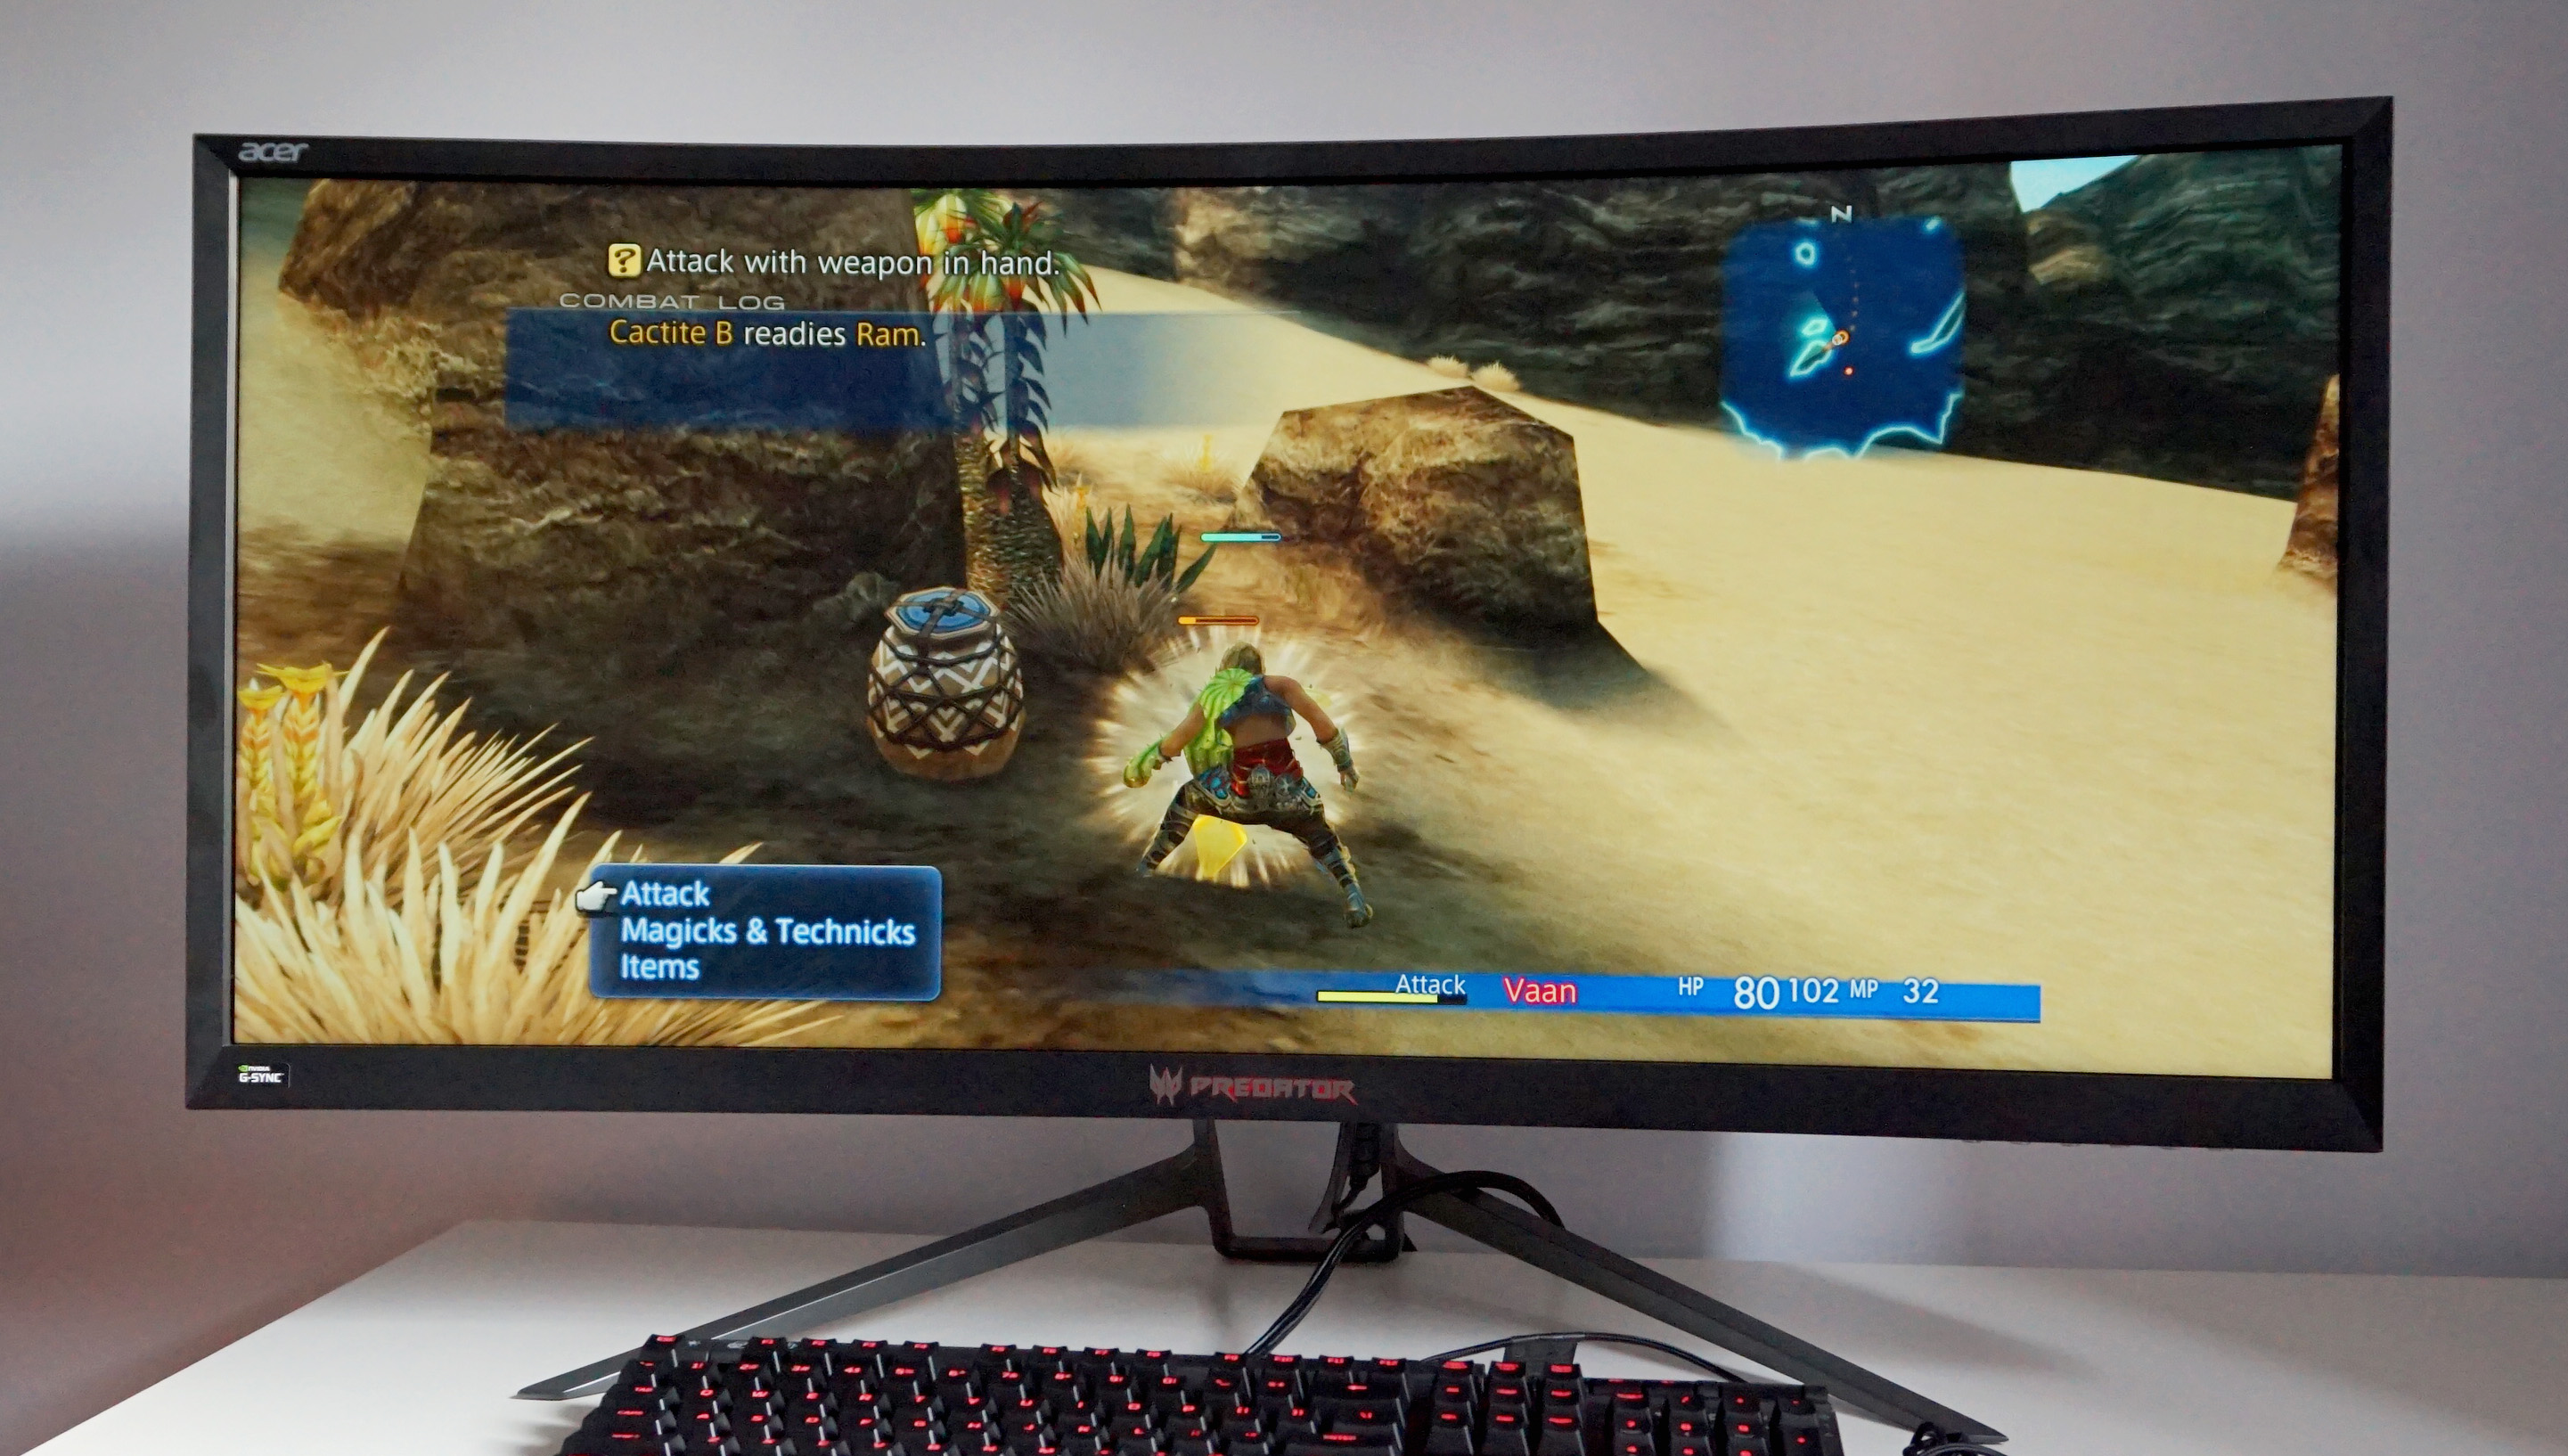 Best gaming monitor 2019: Top 1080p, 1440p and 4K HDR